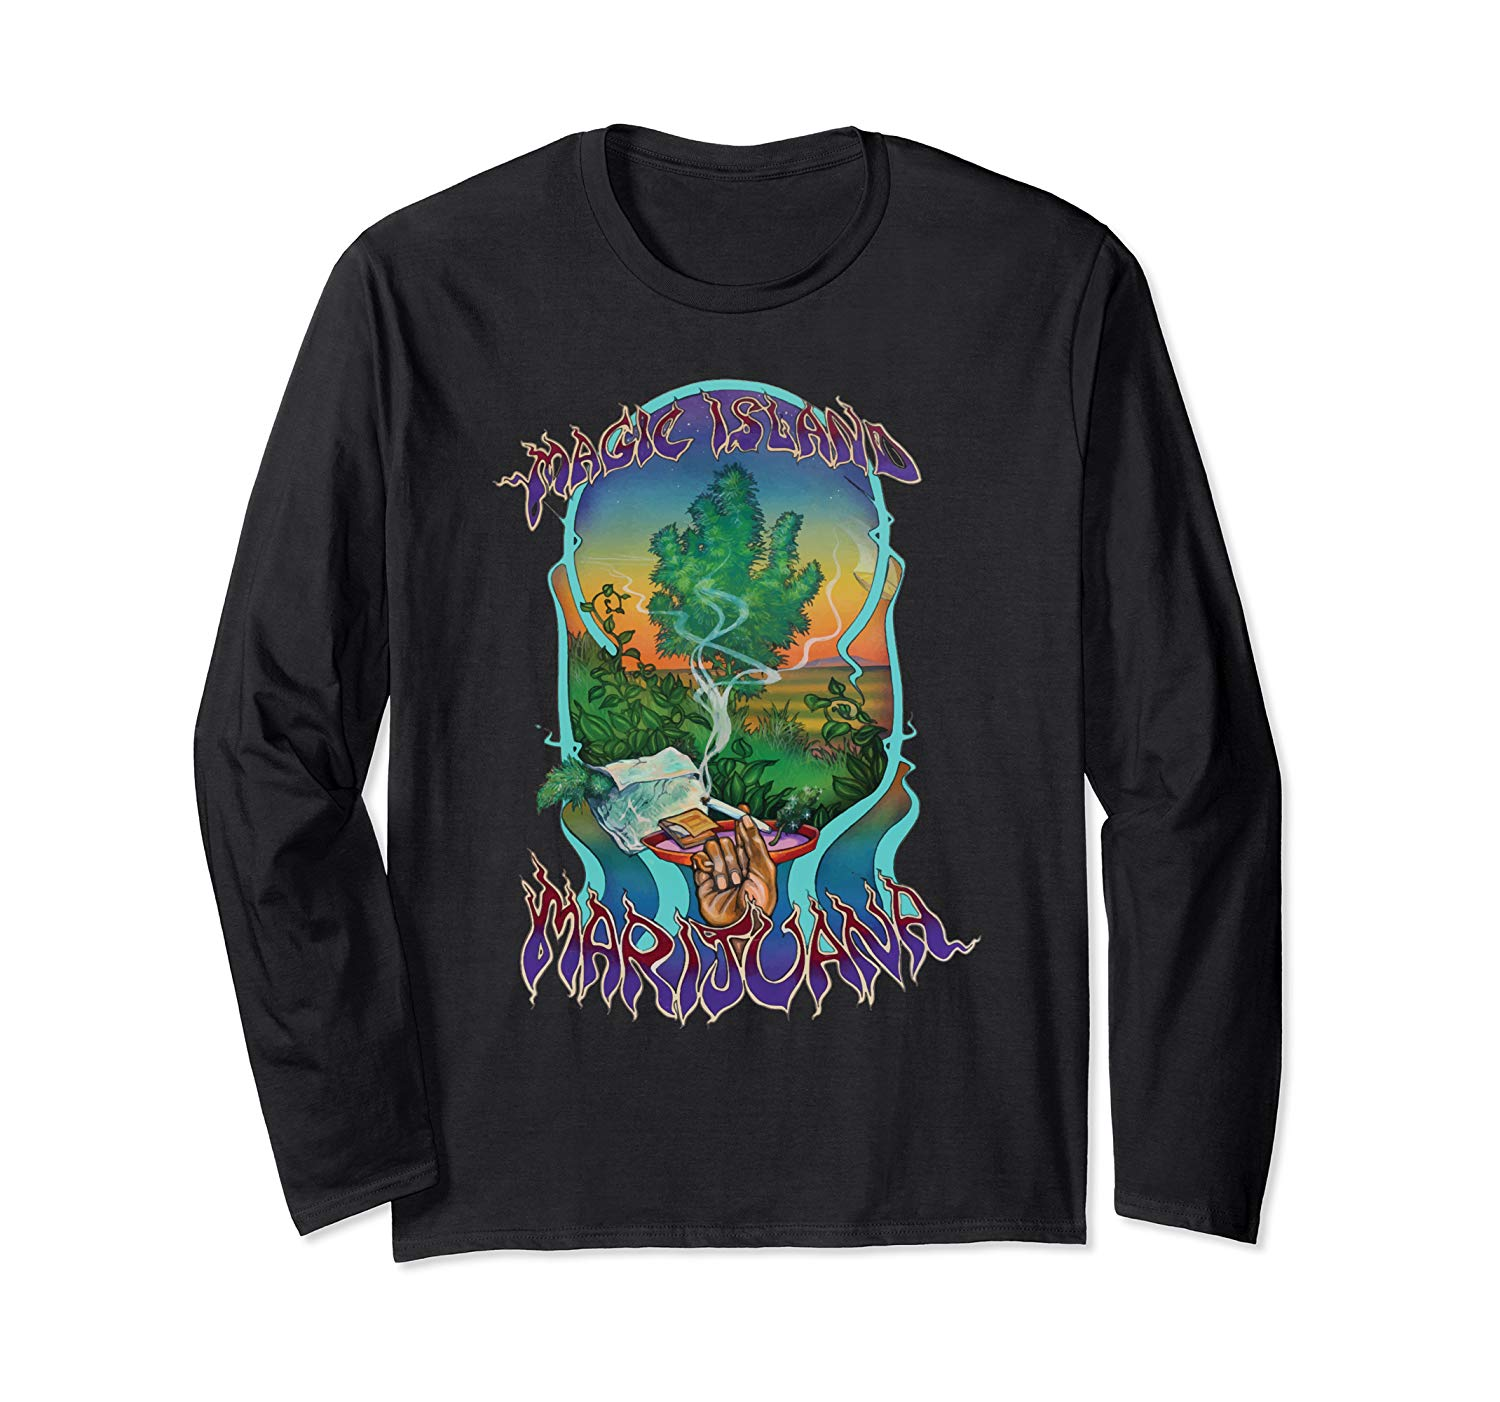 An image of a black magic island marijuana long sleeve from Ganja Outpost.